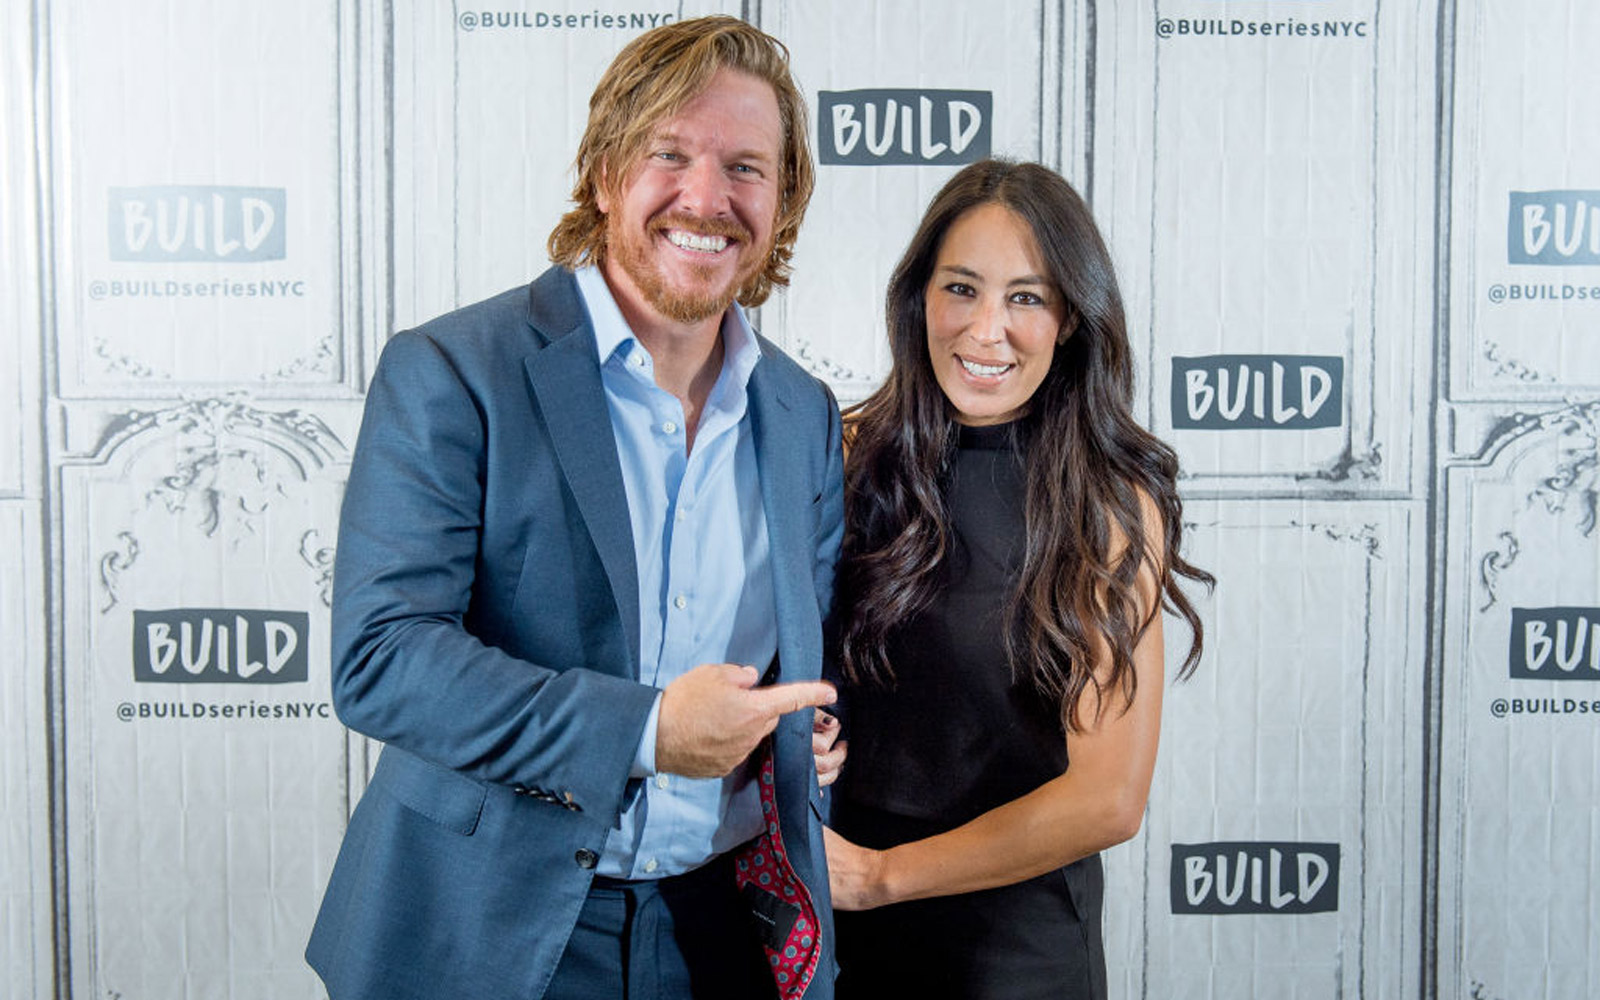 Chip and Joanna Gaines Just Announced They're Having Another Baby